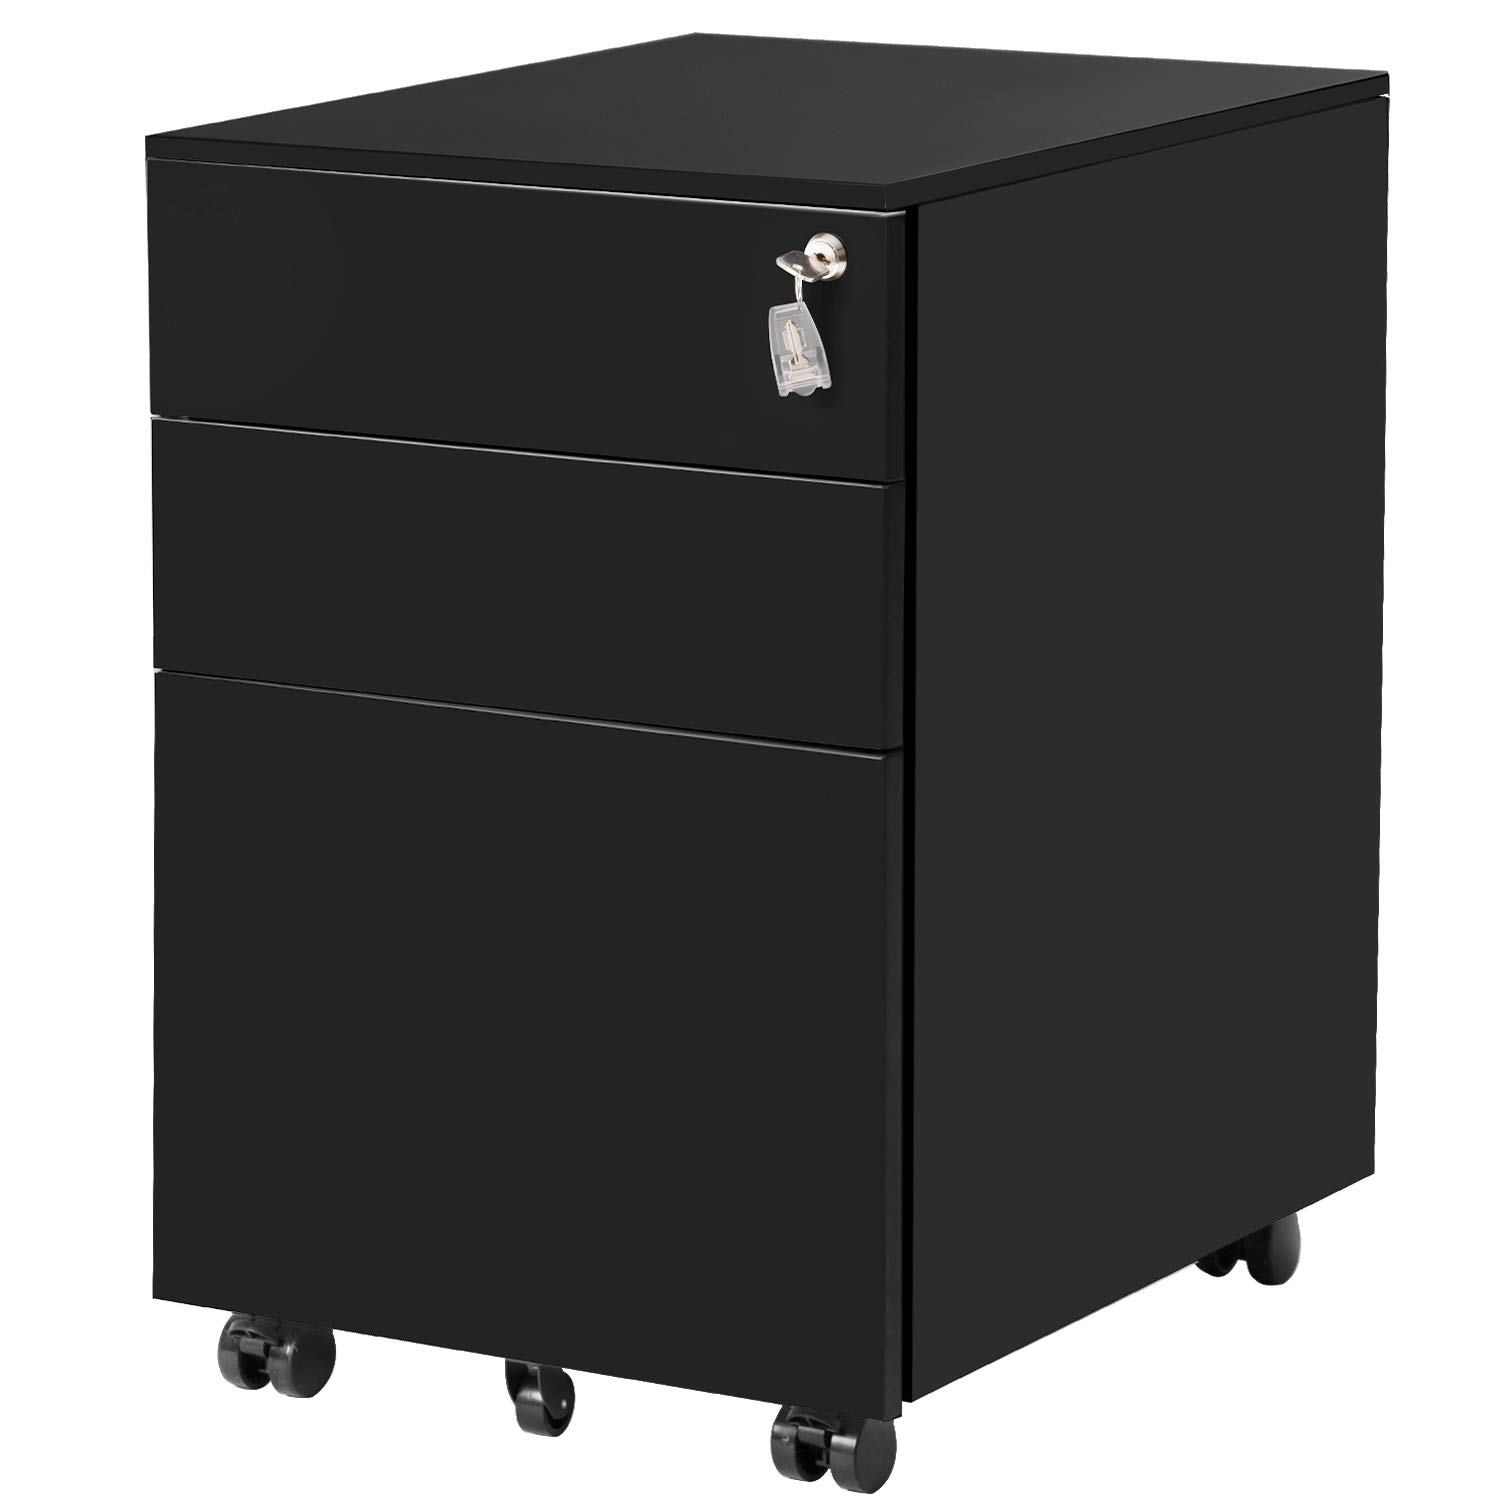 ModernLuxe File Cabinet 3 Drawer Metal Mobile File Cabinet with Lock Fully-Assembled Except Casters (Black) by ModernLuxe